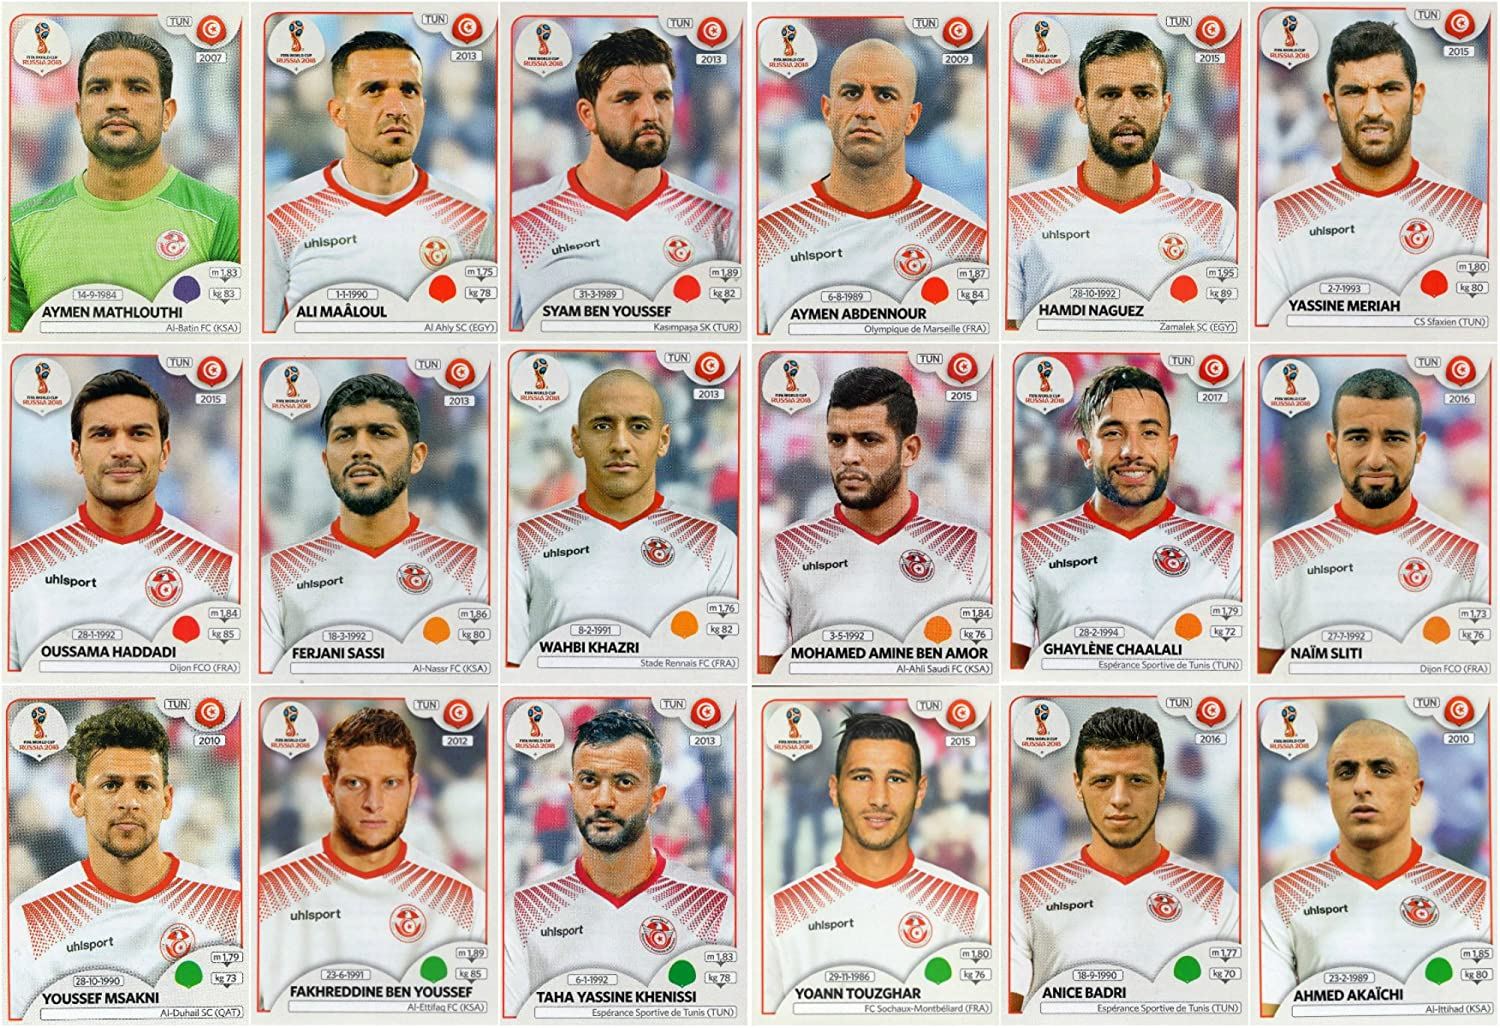 e7b7b21ed00 PANINI WORLD CUP 2018 STICKERS - 18 TUNISIA STICKERS - TEAM SET - PLAYERS  ONLY #554 - #571: Amazon.co.uk: Sports & Outdoors